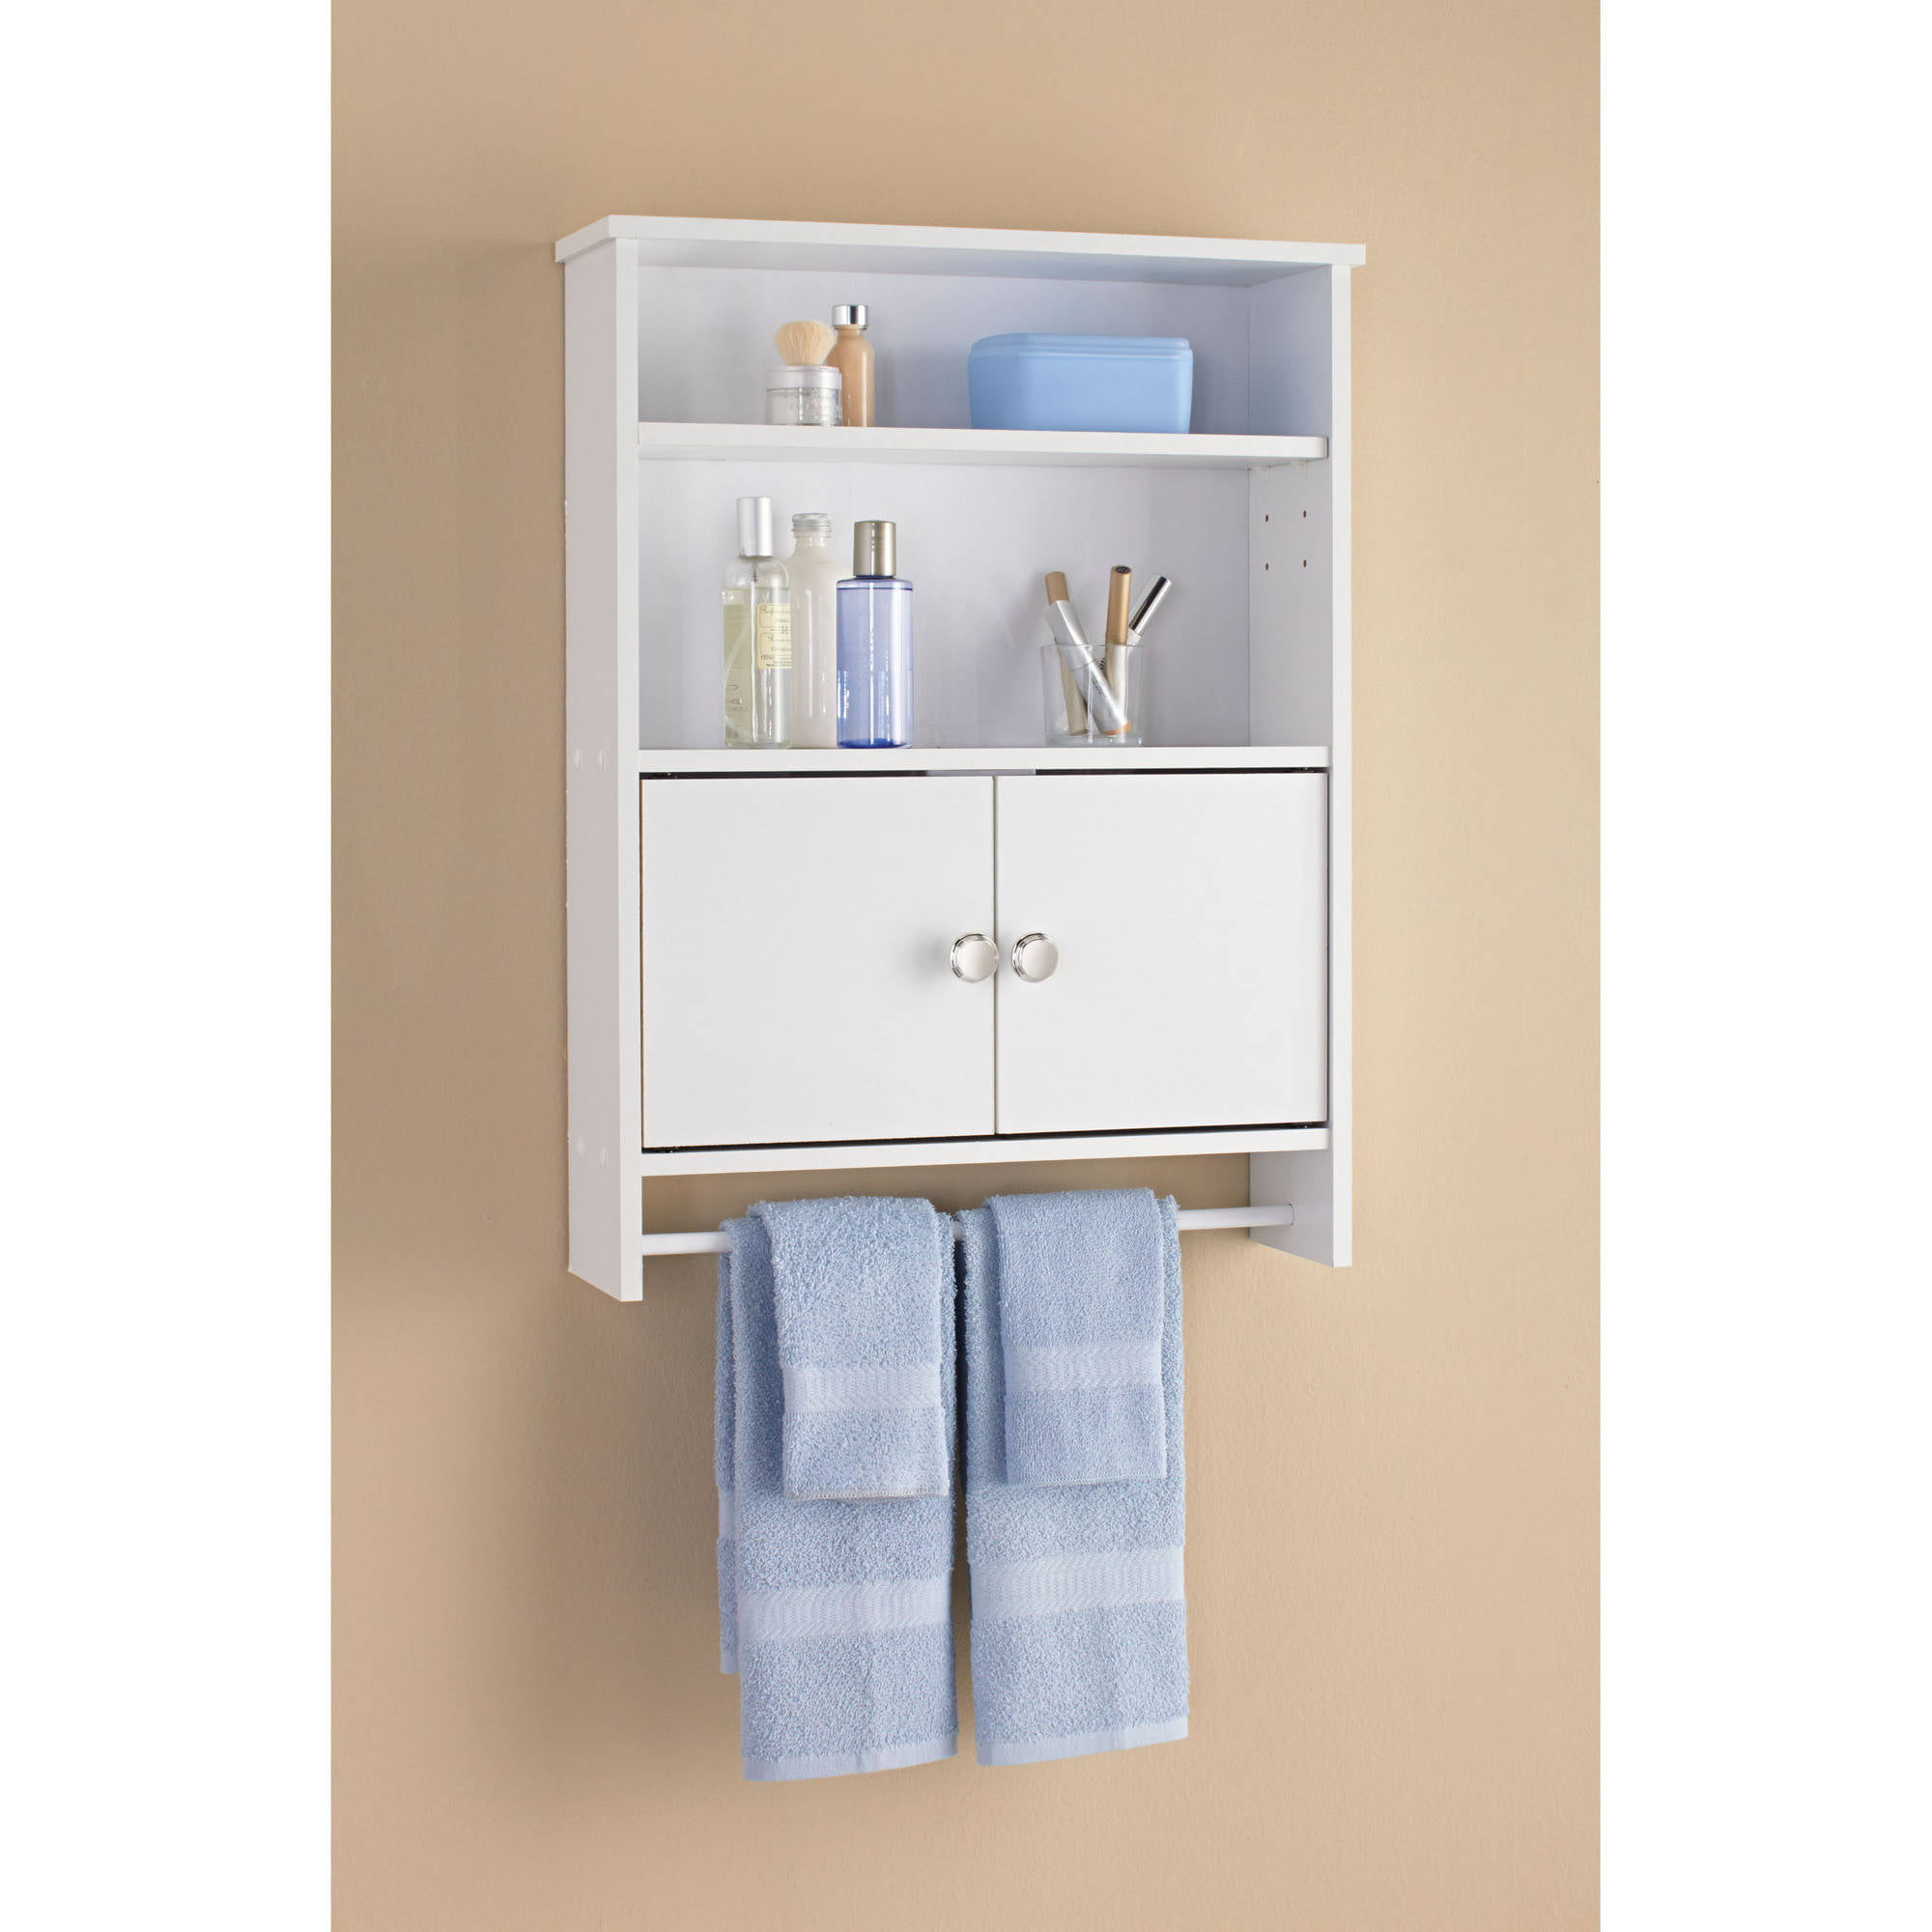 Bathroom storage wall cabinet - Bathroom Storage Wall Cabinet 10